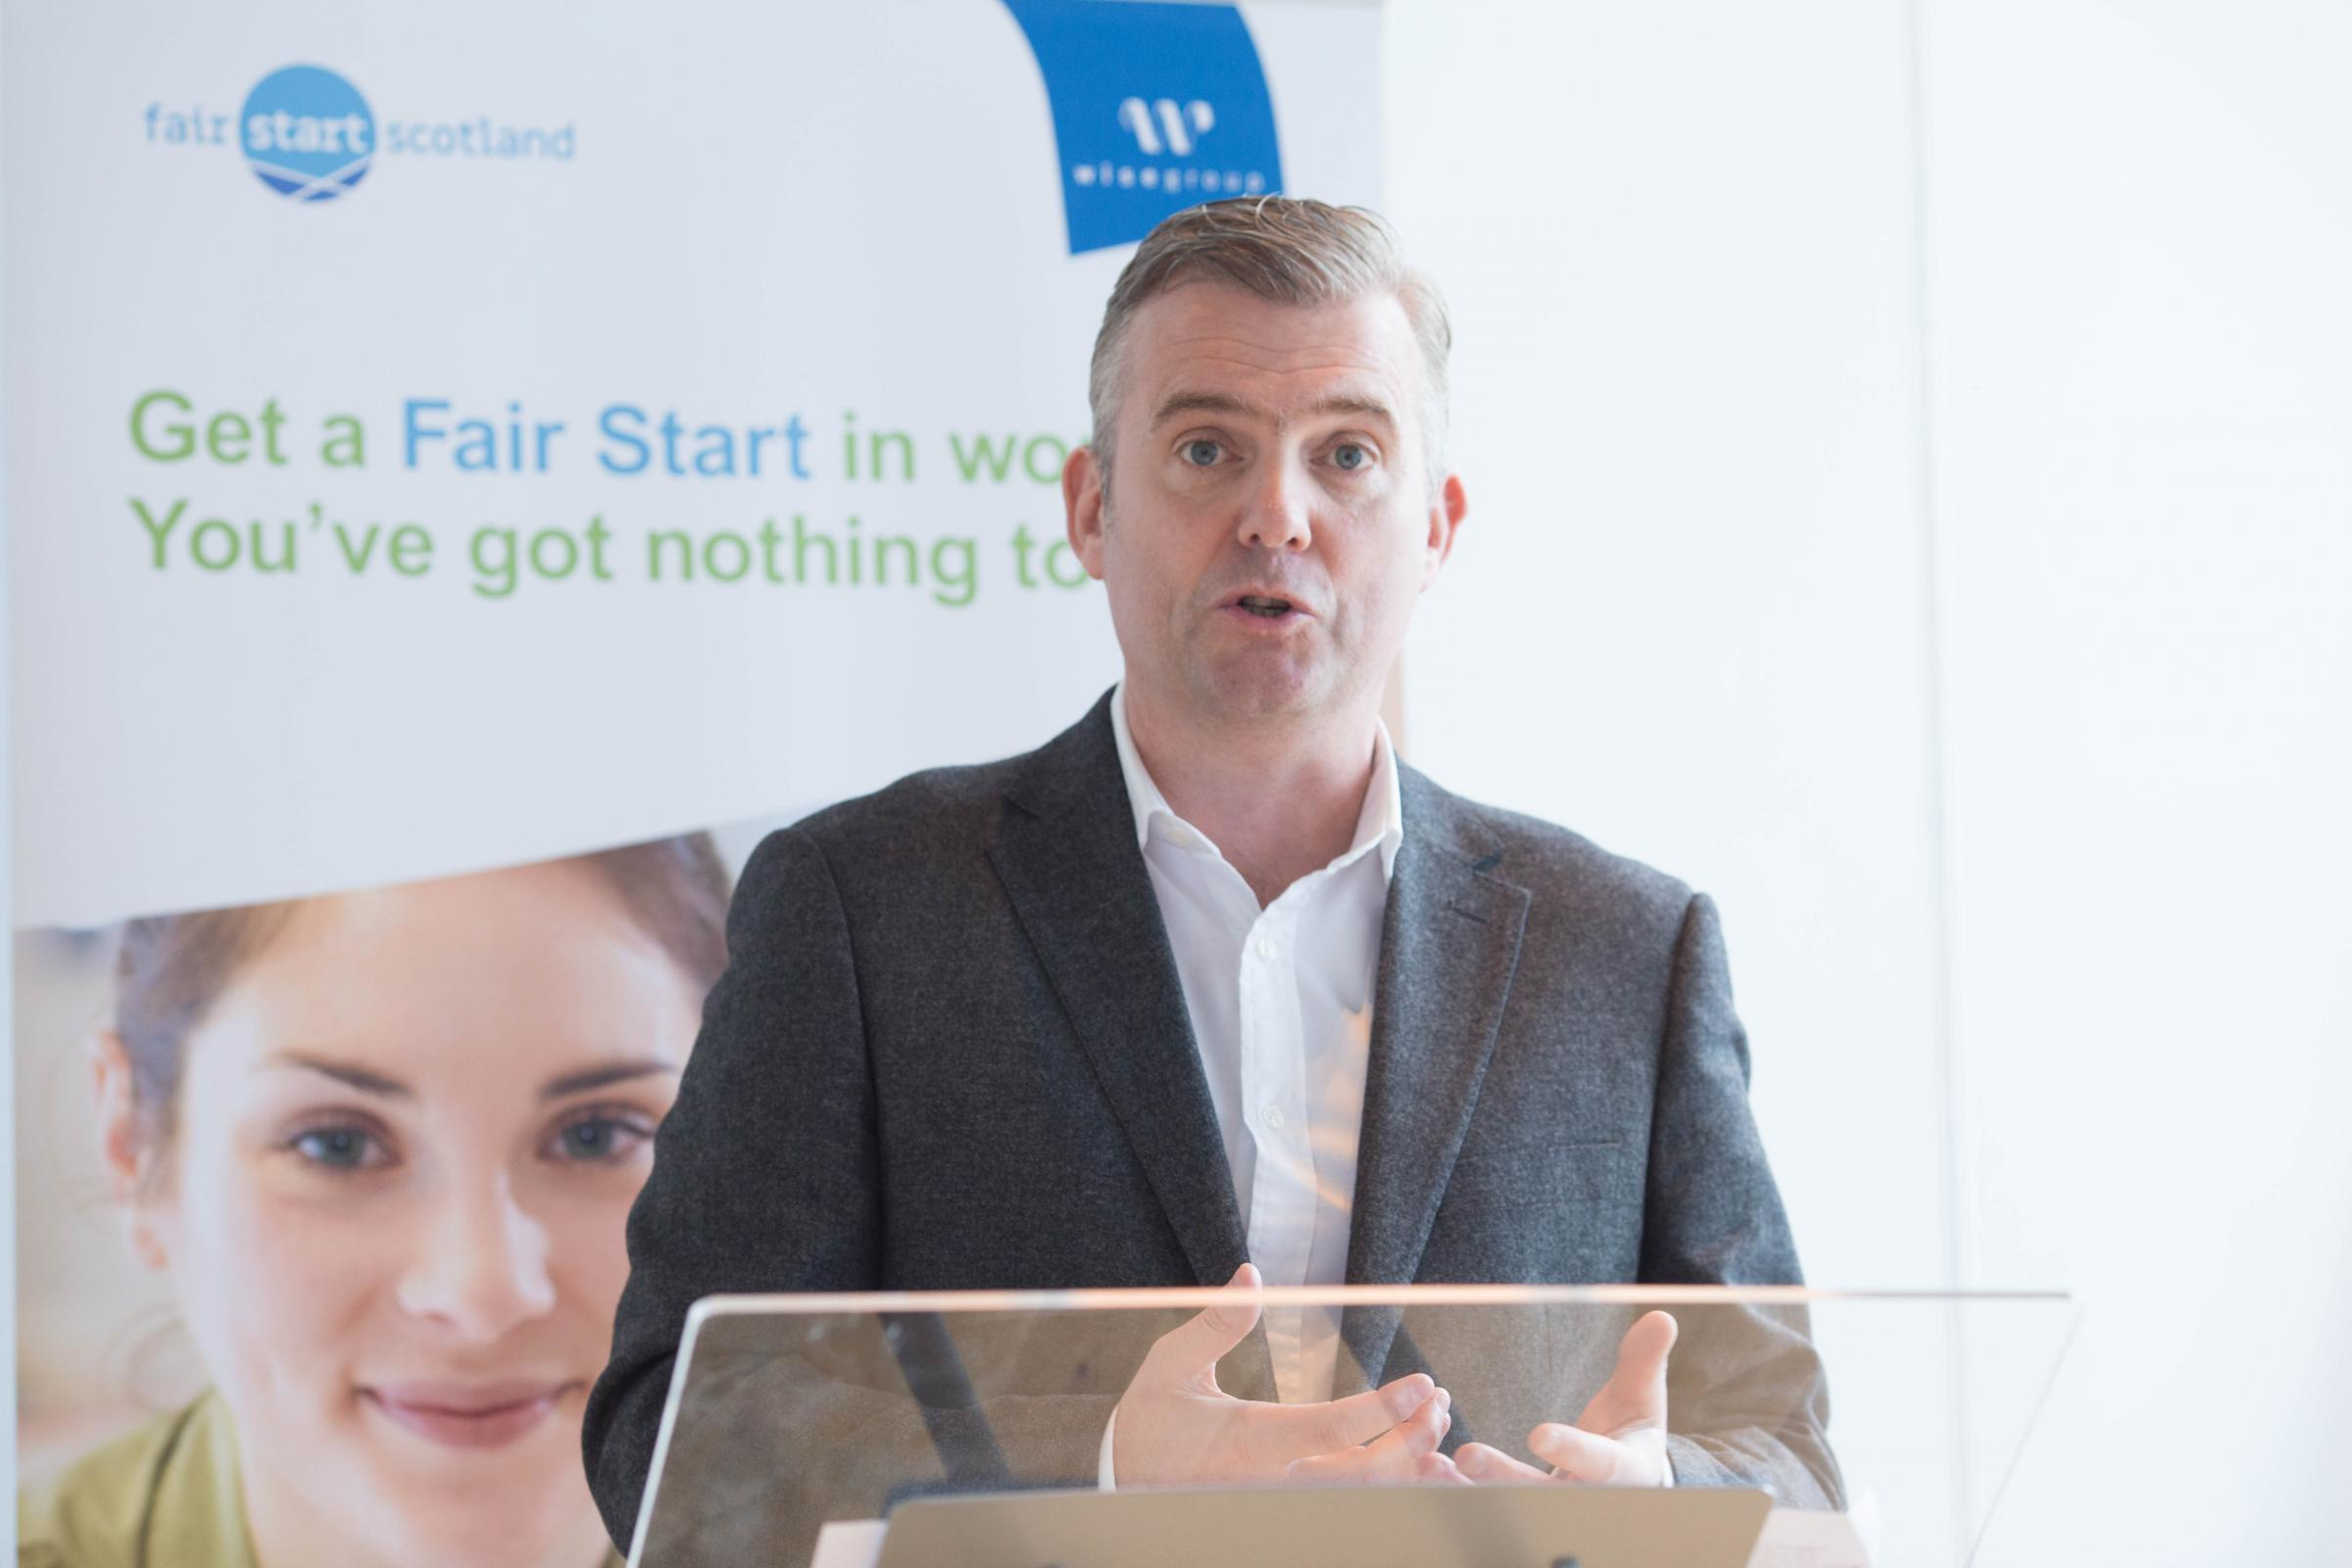 Fair Start Scotland aims to prove nobody is unemployable